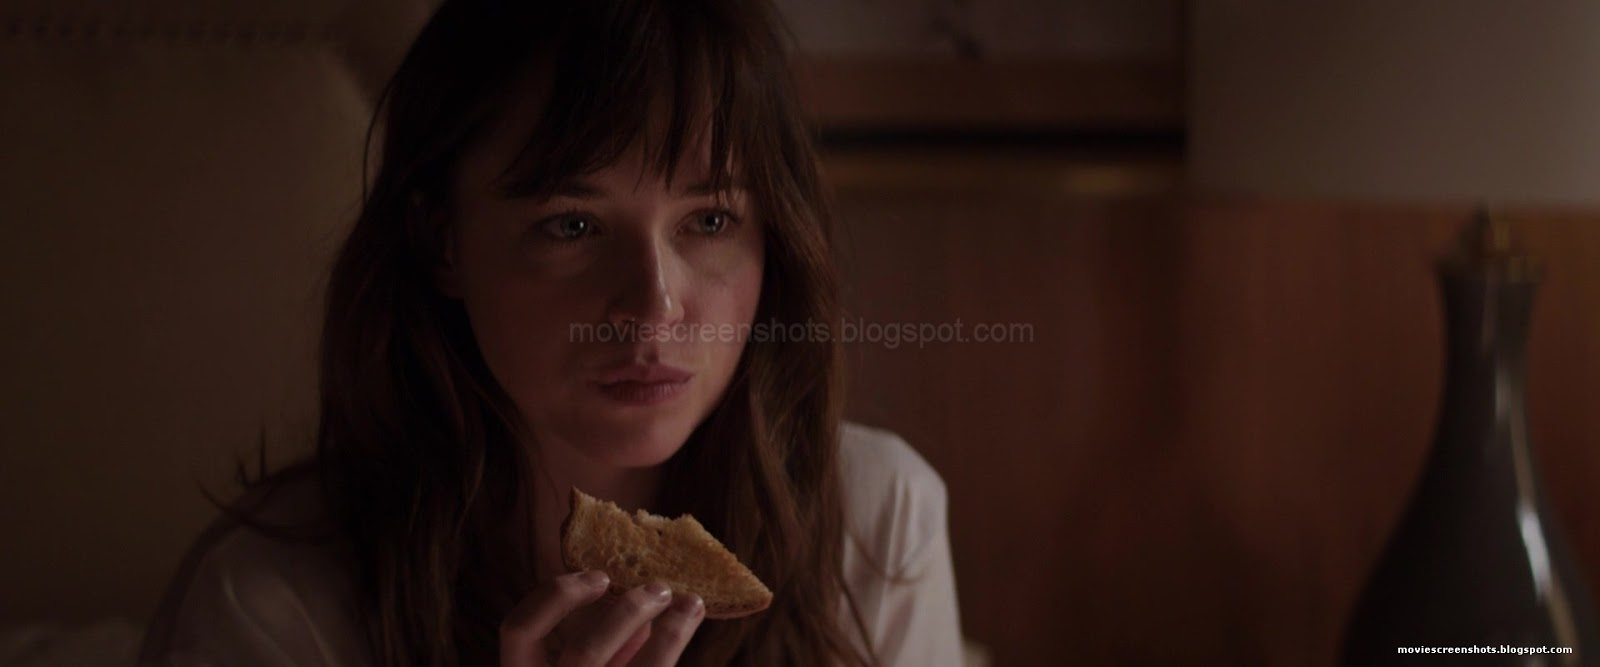 Vagebond 39 s movie screenshots fifty shades of grey 2015 for Fifty shades og grey